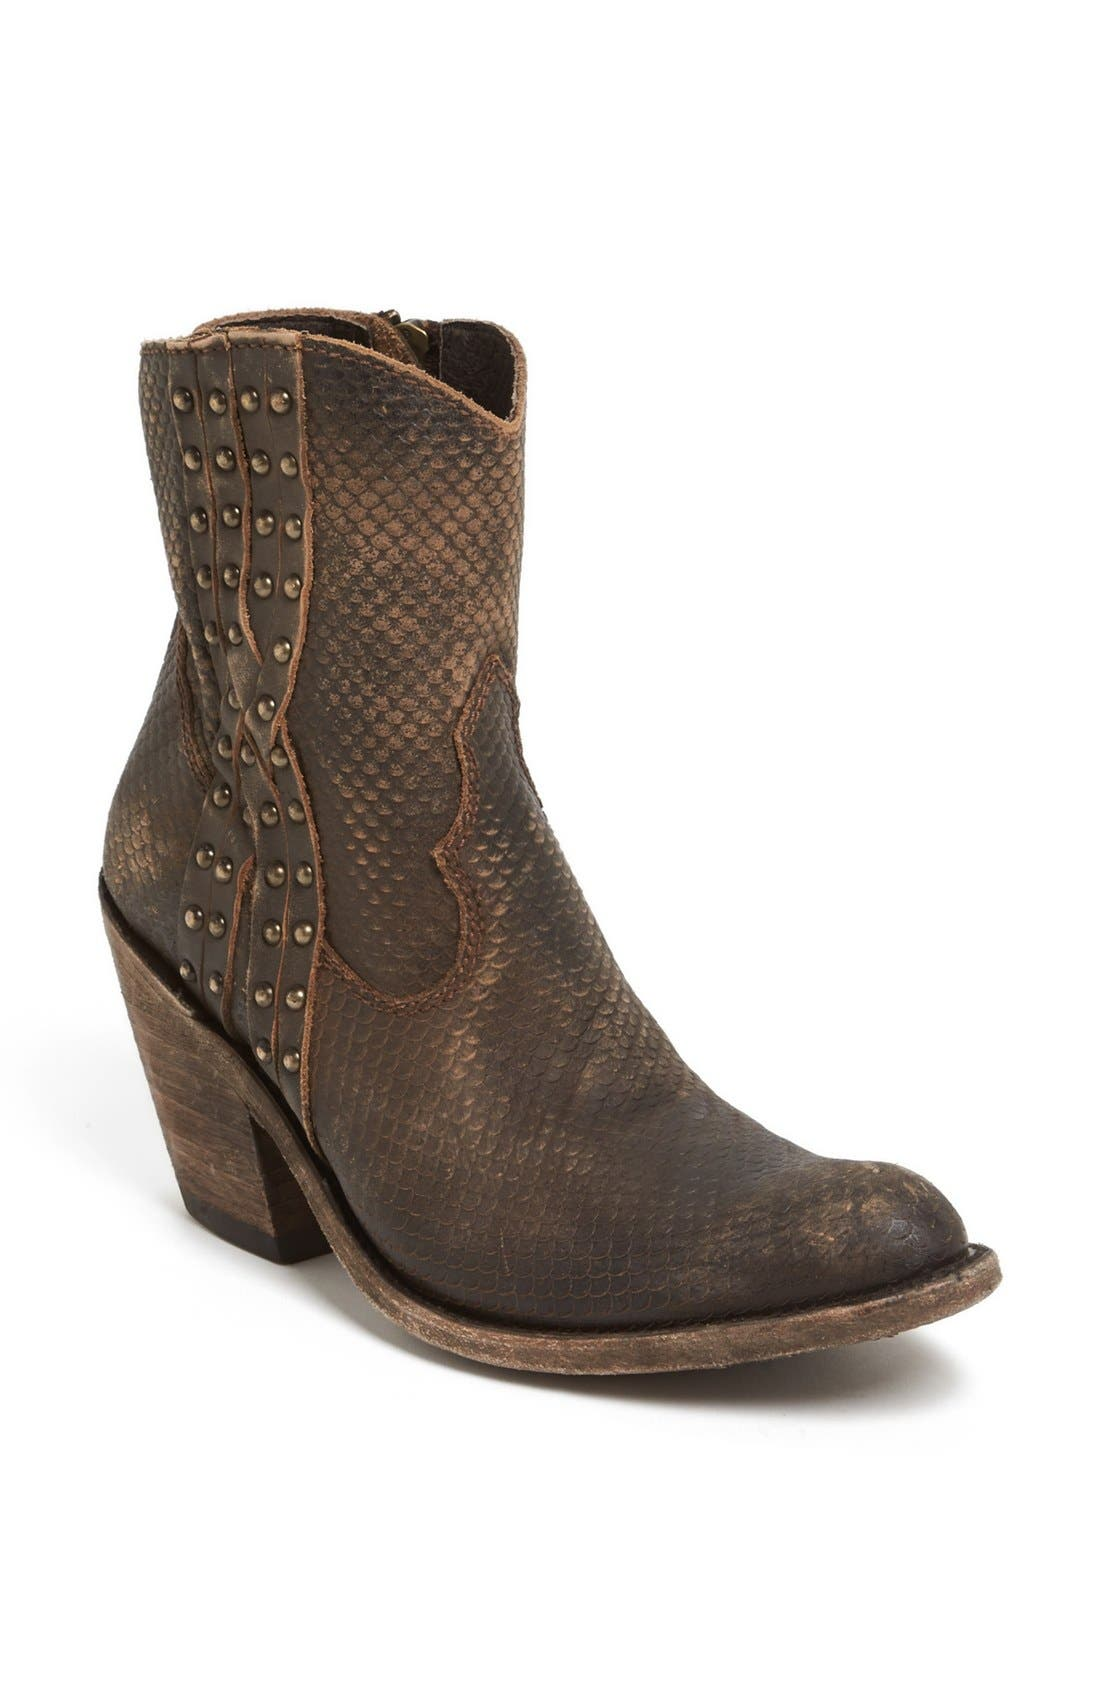 Alternate Image 1 Selected - Liberty Black Studded Short Western Boot